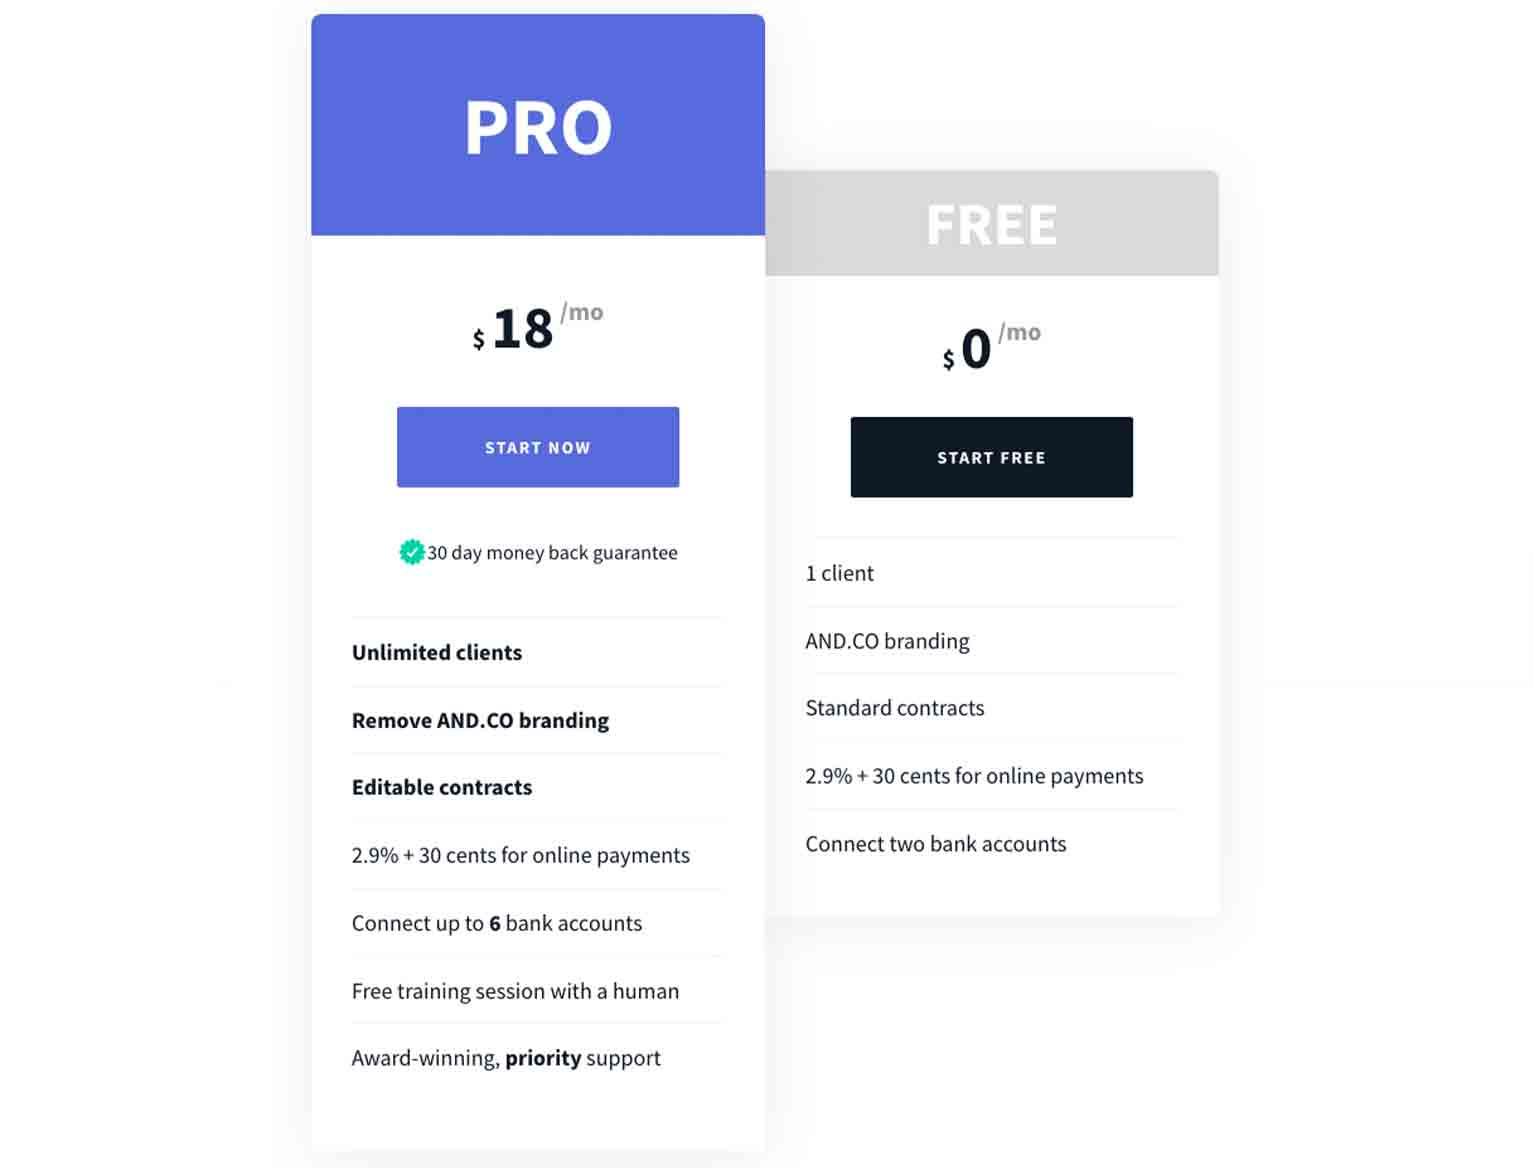 AND.CO offers a limited version of its business-management software for free.